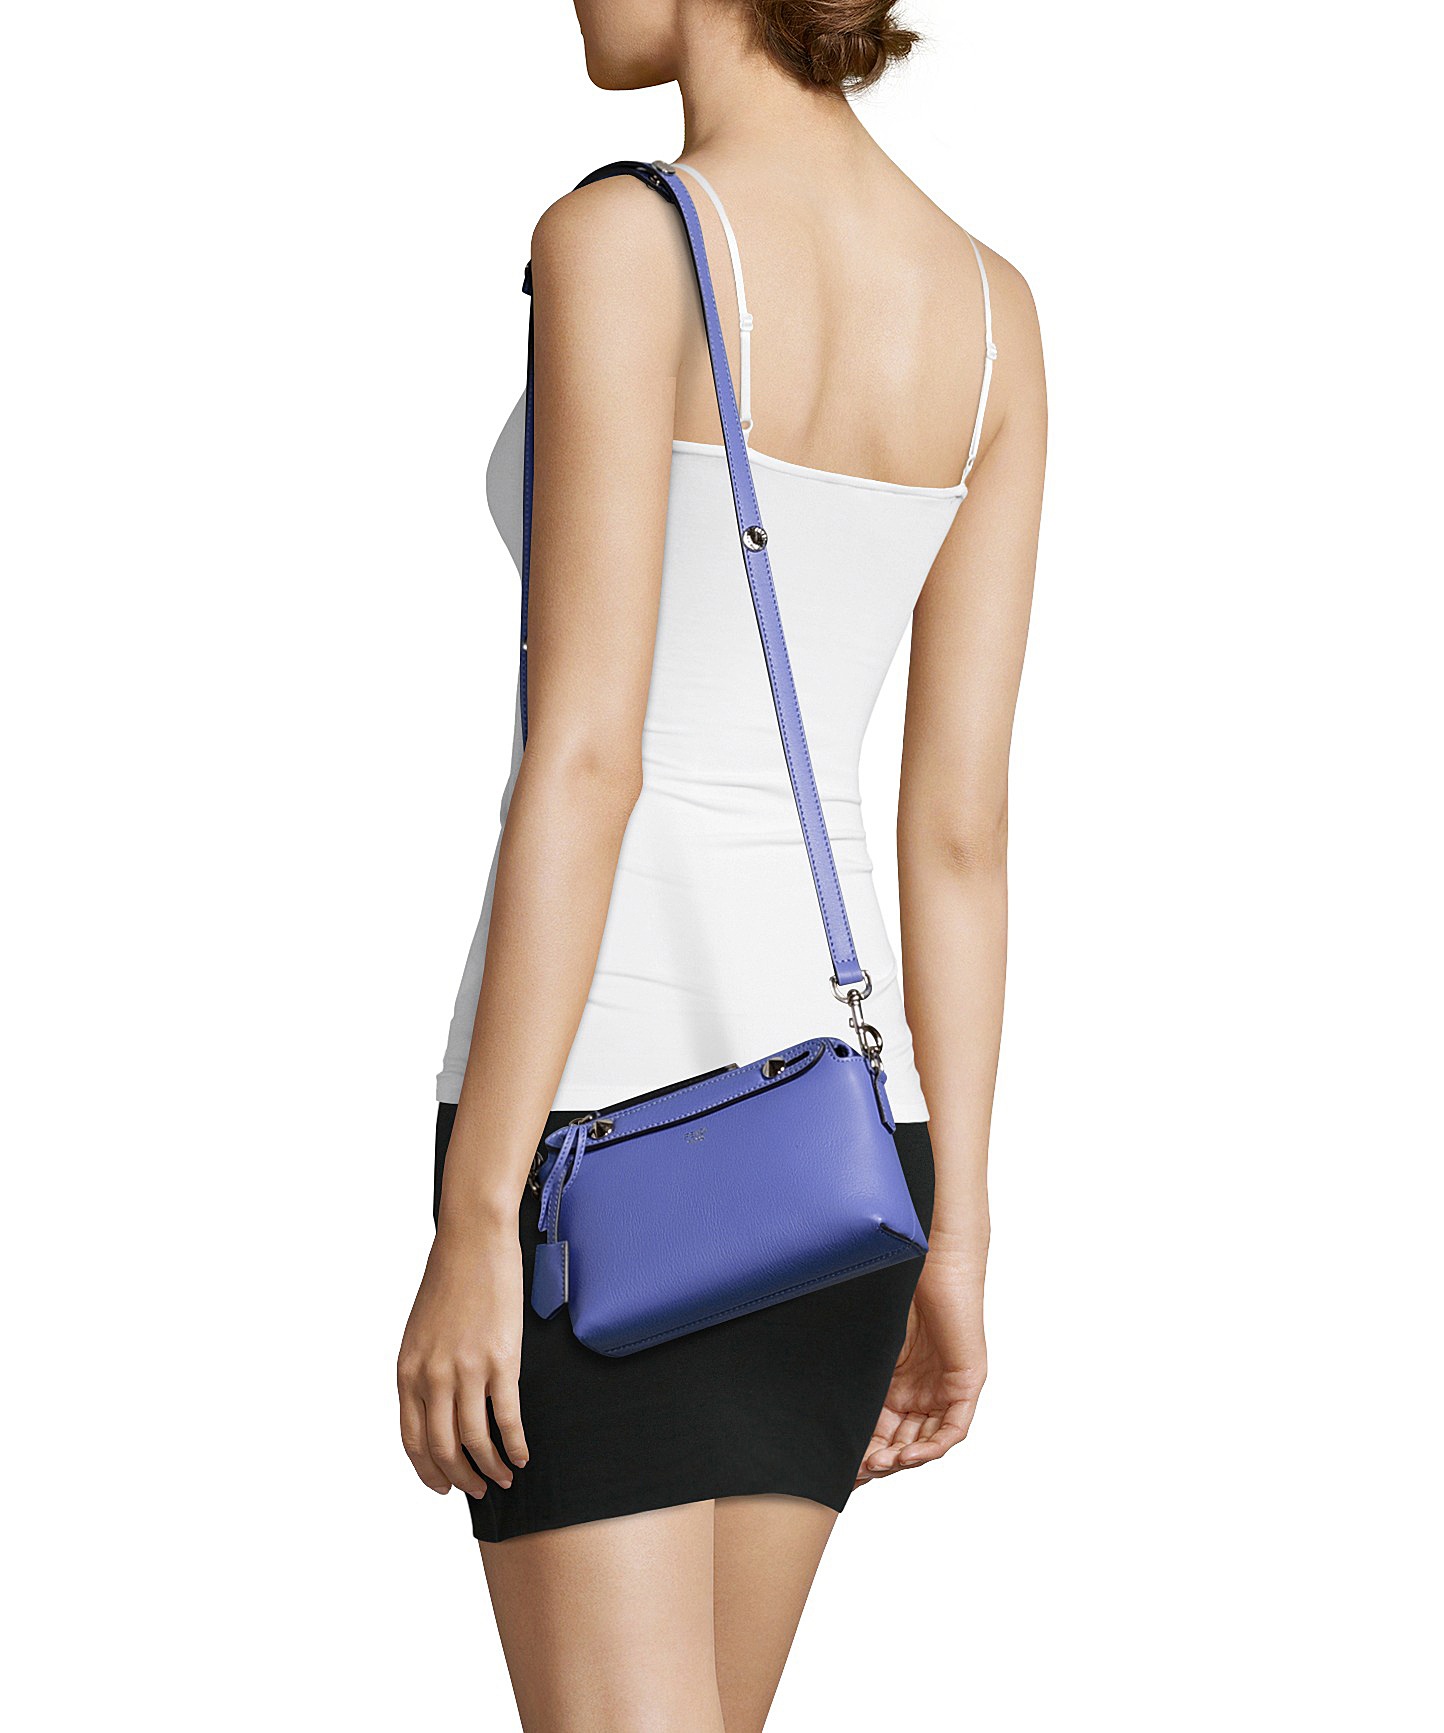 ... cheap lyst fendi lilac leather by the way mini shoulder bag in purple  77b78 07b07 244ff05d41914